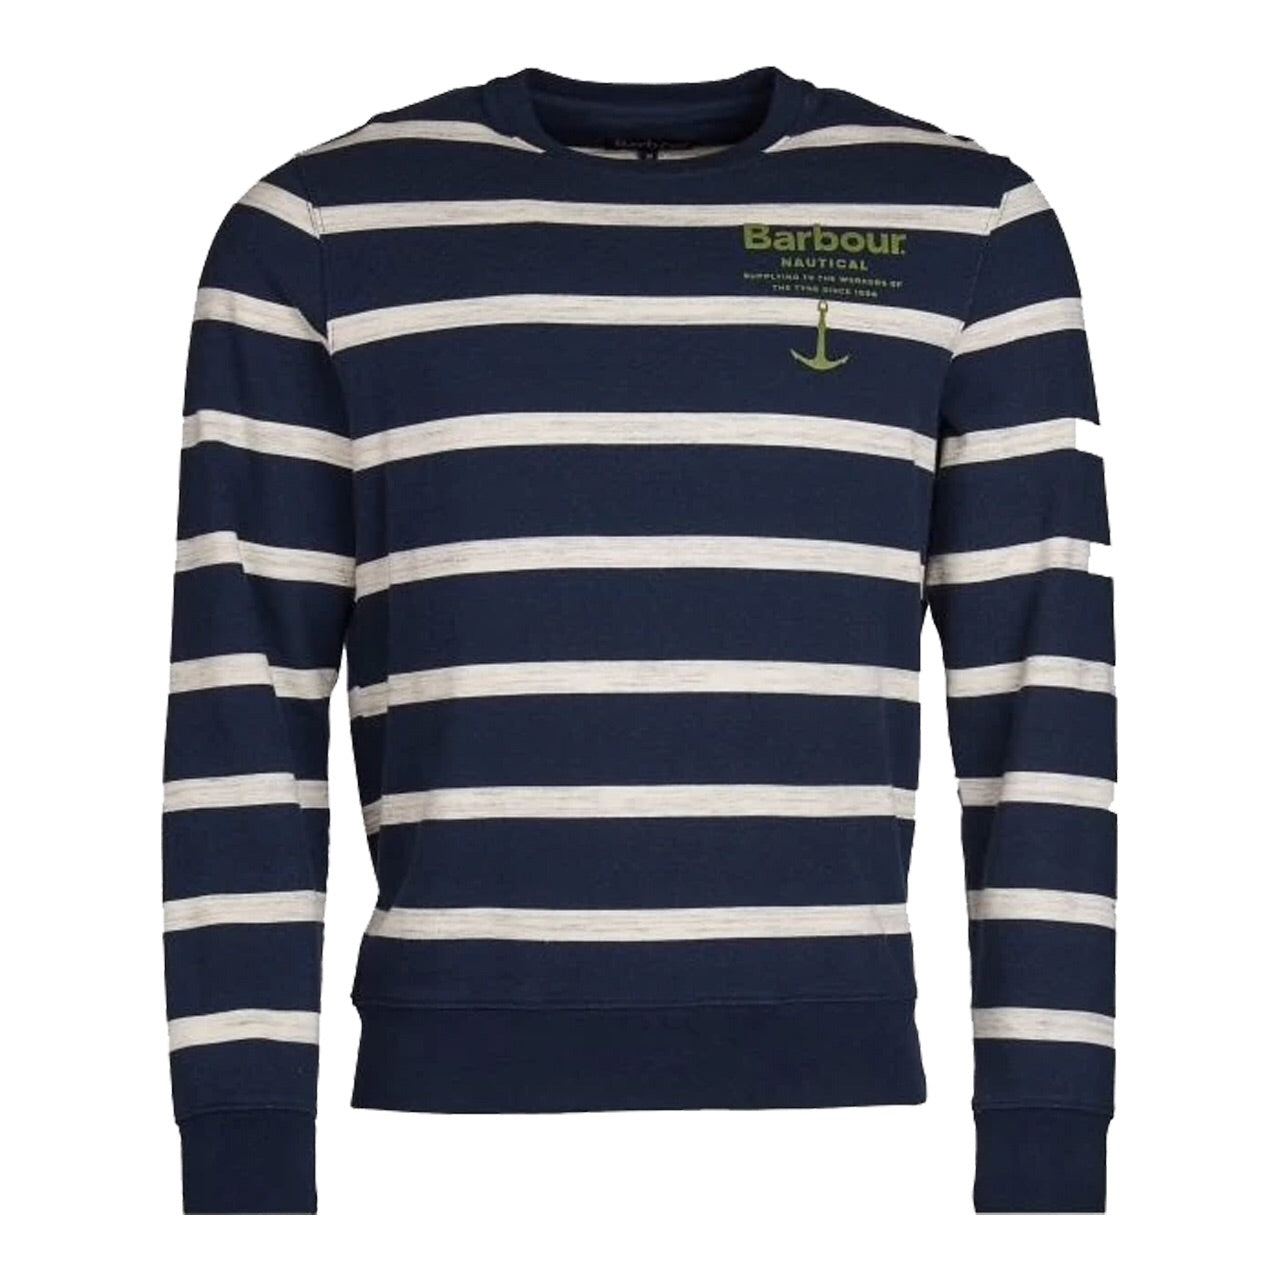 BARBOUR OFFSHORE CREW NECK SWEATER Sweatshirt